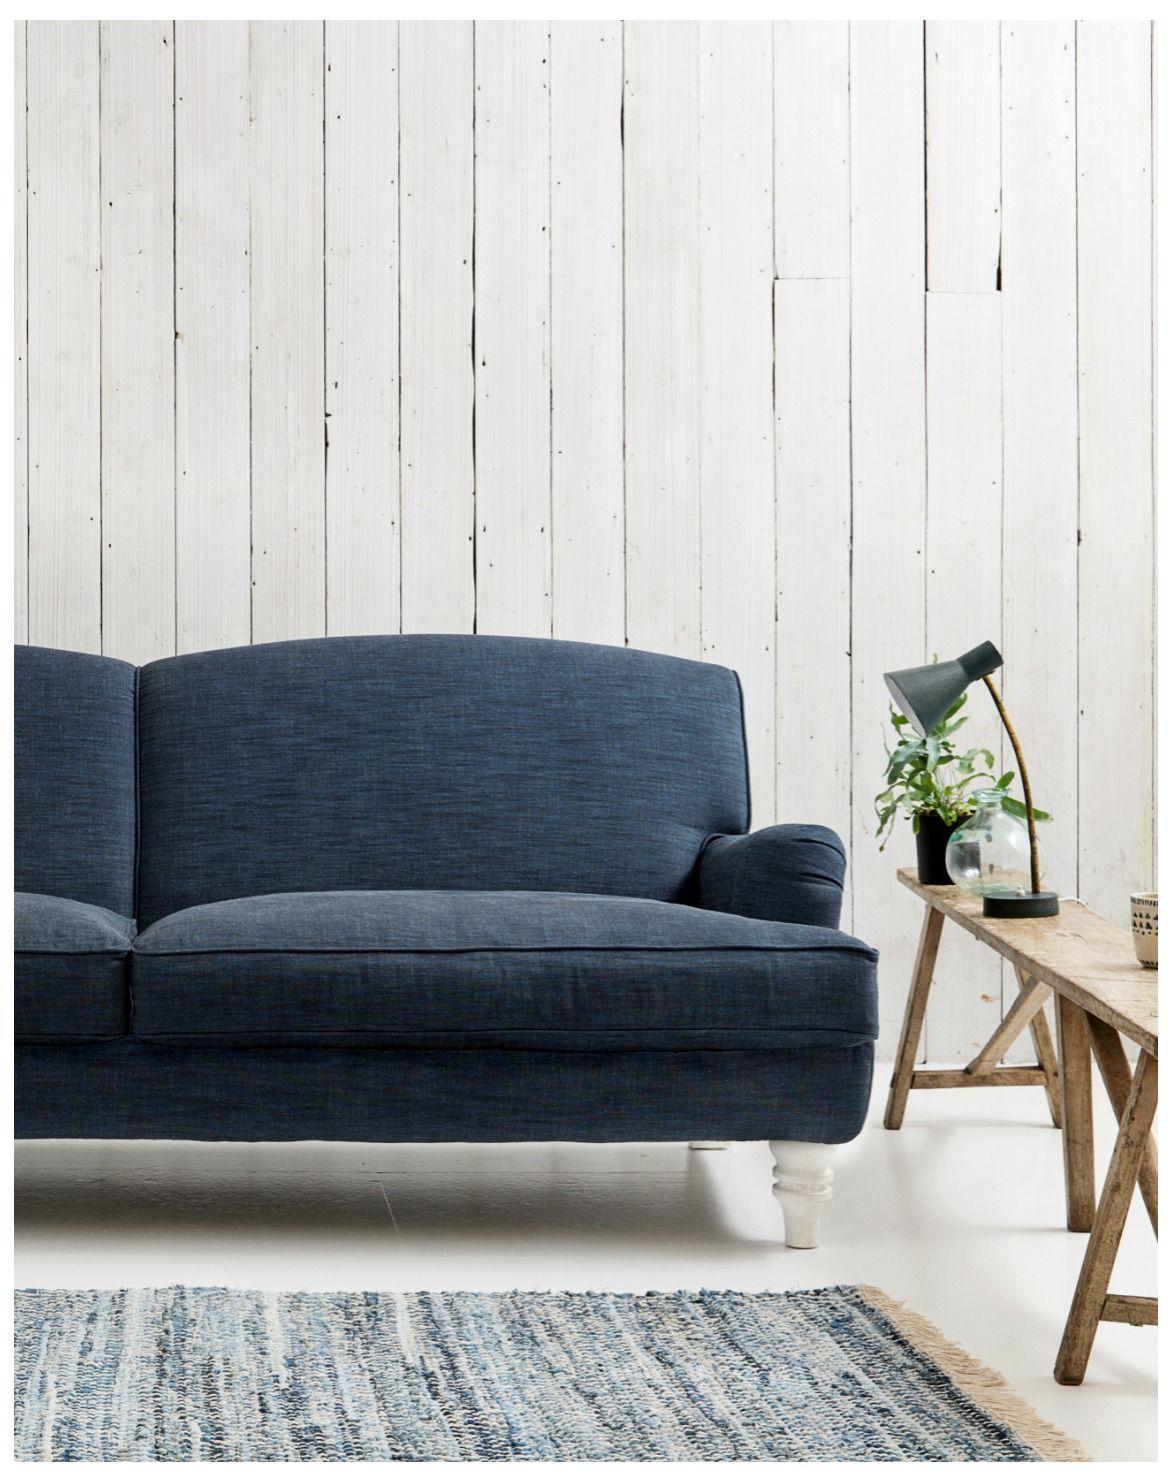 Beautiful MODERN SOFA INSPIRATION/ Eliza Sofa   The Classic Sofa Shown Here In A Navy  Fabric Is Our Best Selling Sofa Design For A Reason. Its Fits In Both  Classical ...